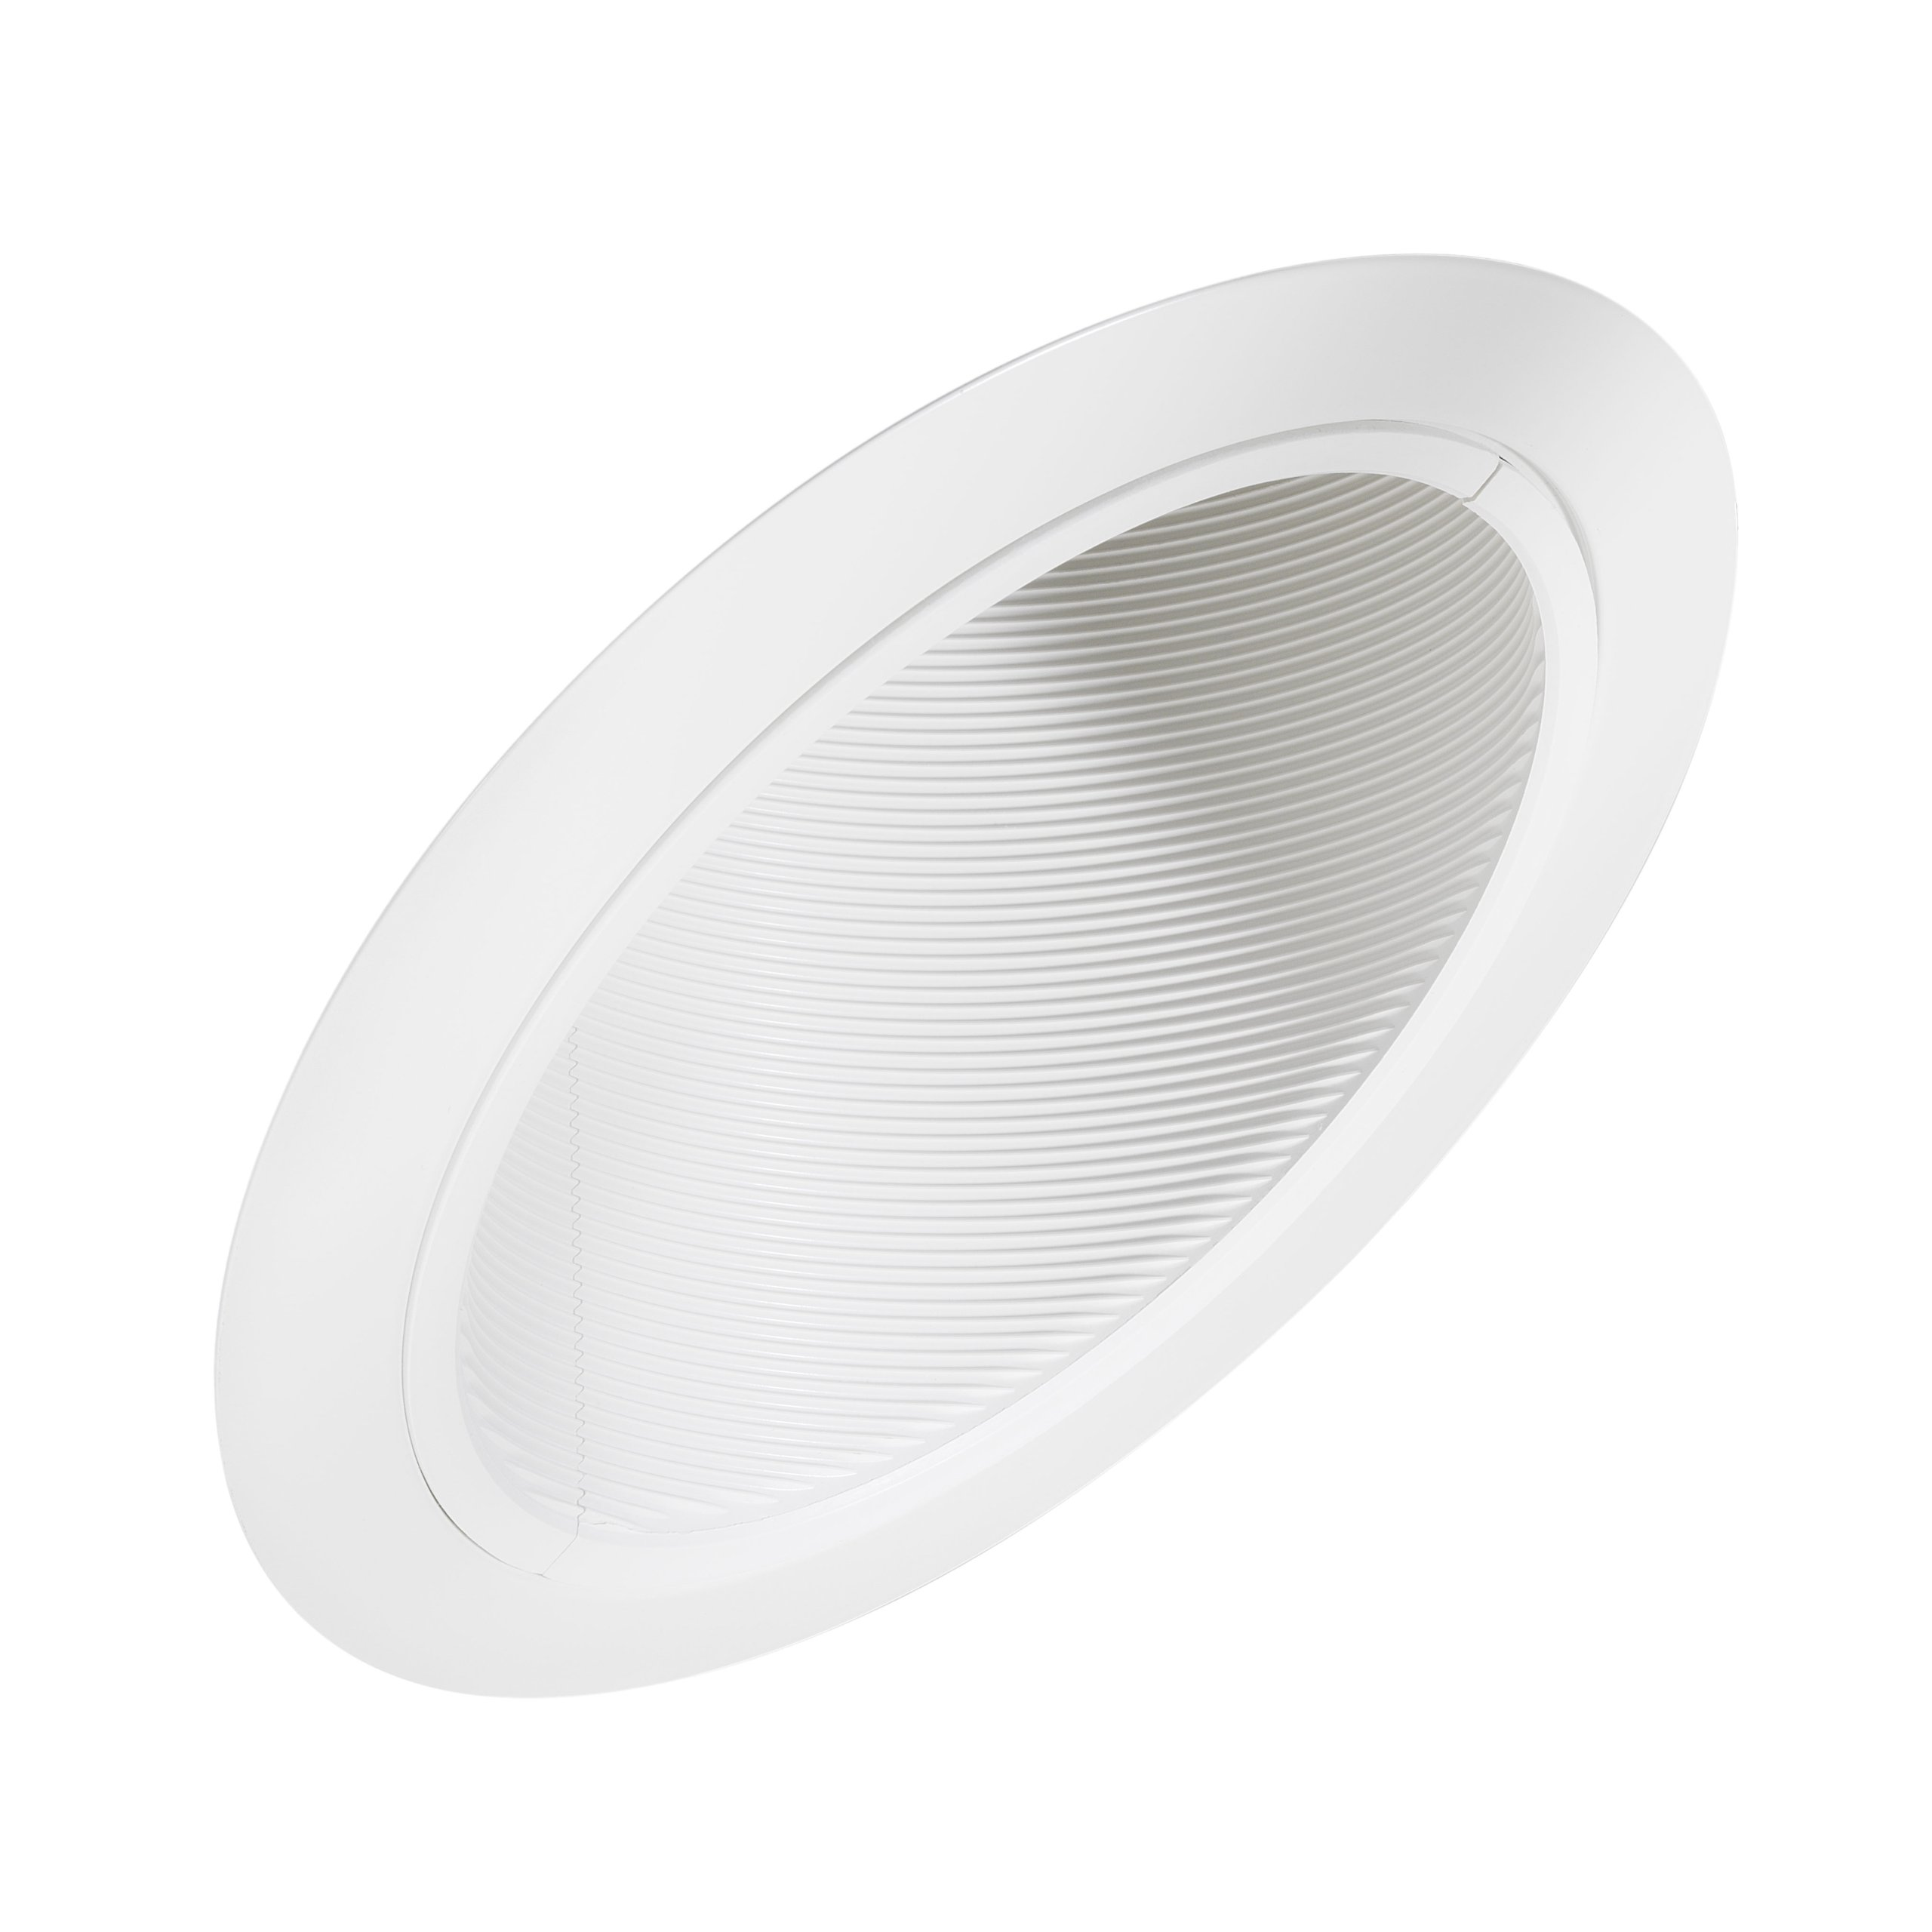 Juno Lighting 604W-WH 6-Inch Super Slope Downlight White Baffle, White Trim